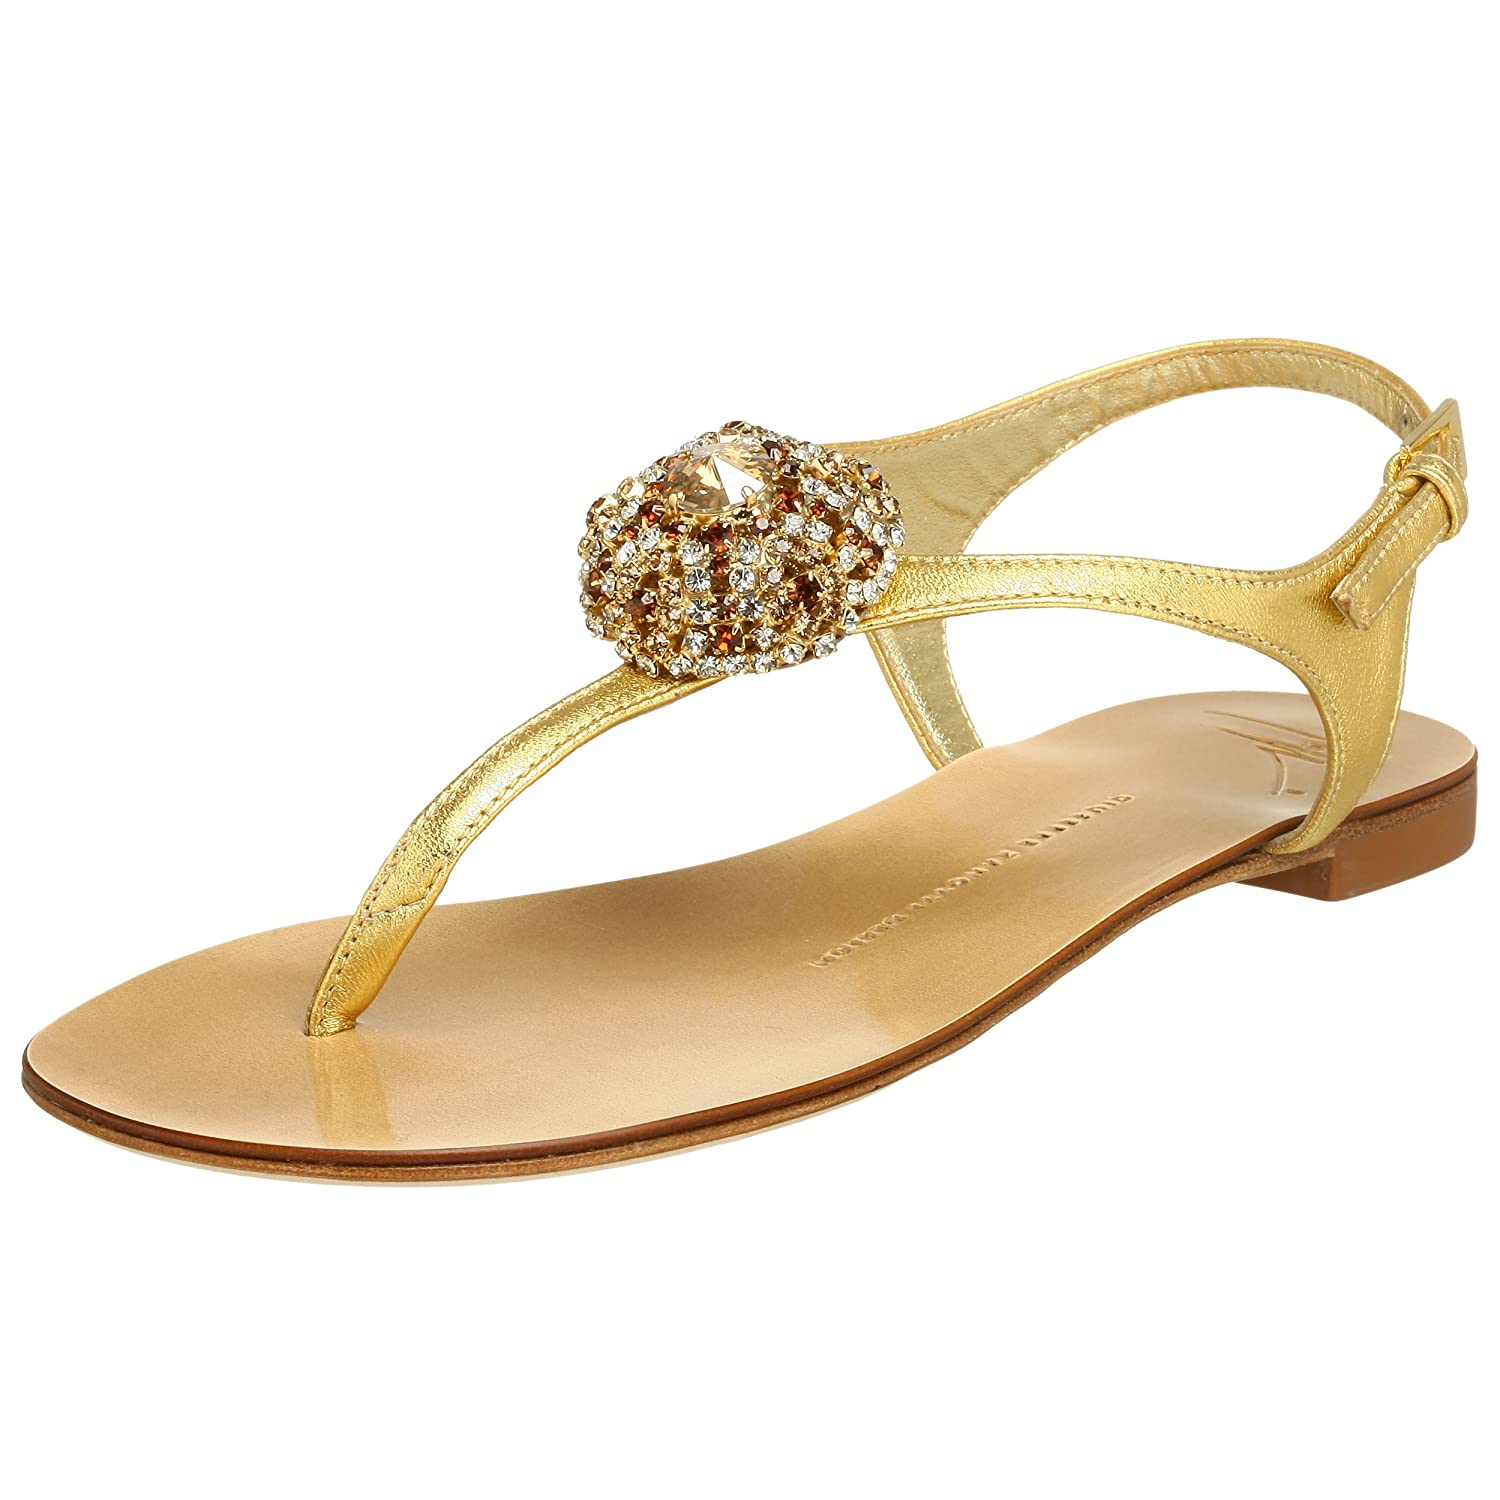 Giuseppe Zanotti Women's E90051 Sandal - Free Overnight Shipping & Return Shipping: Endless.com :  sandal gold summer shoes